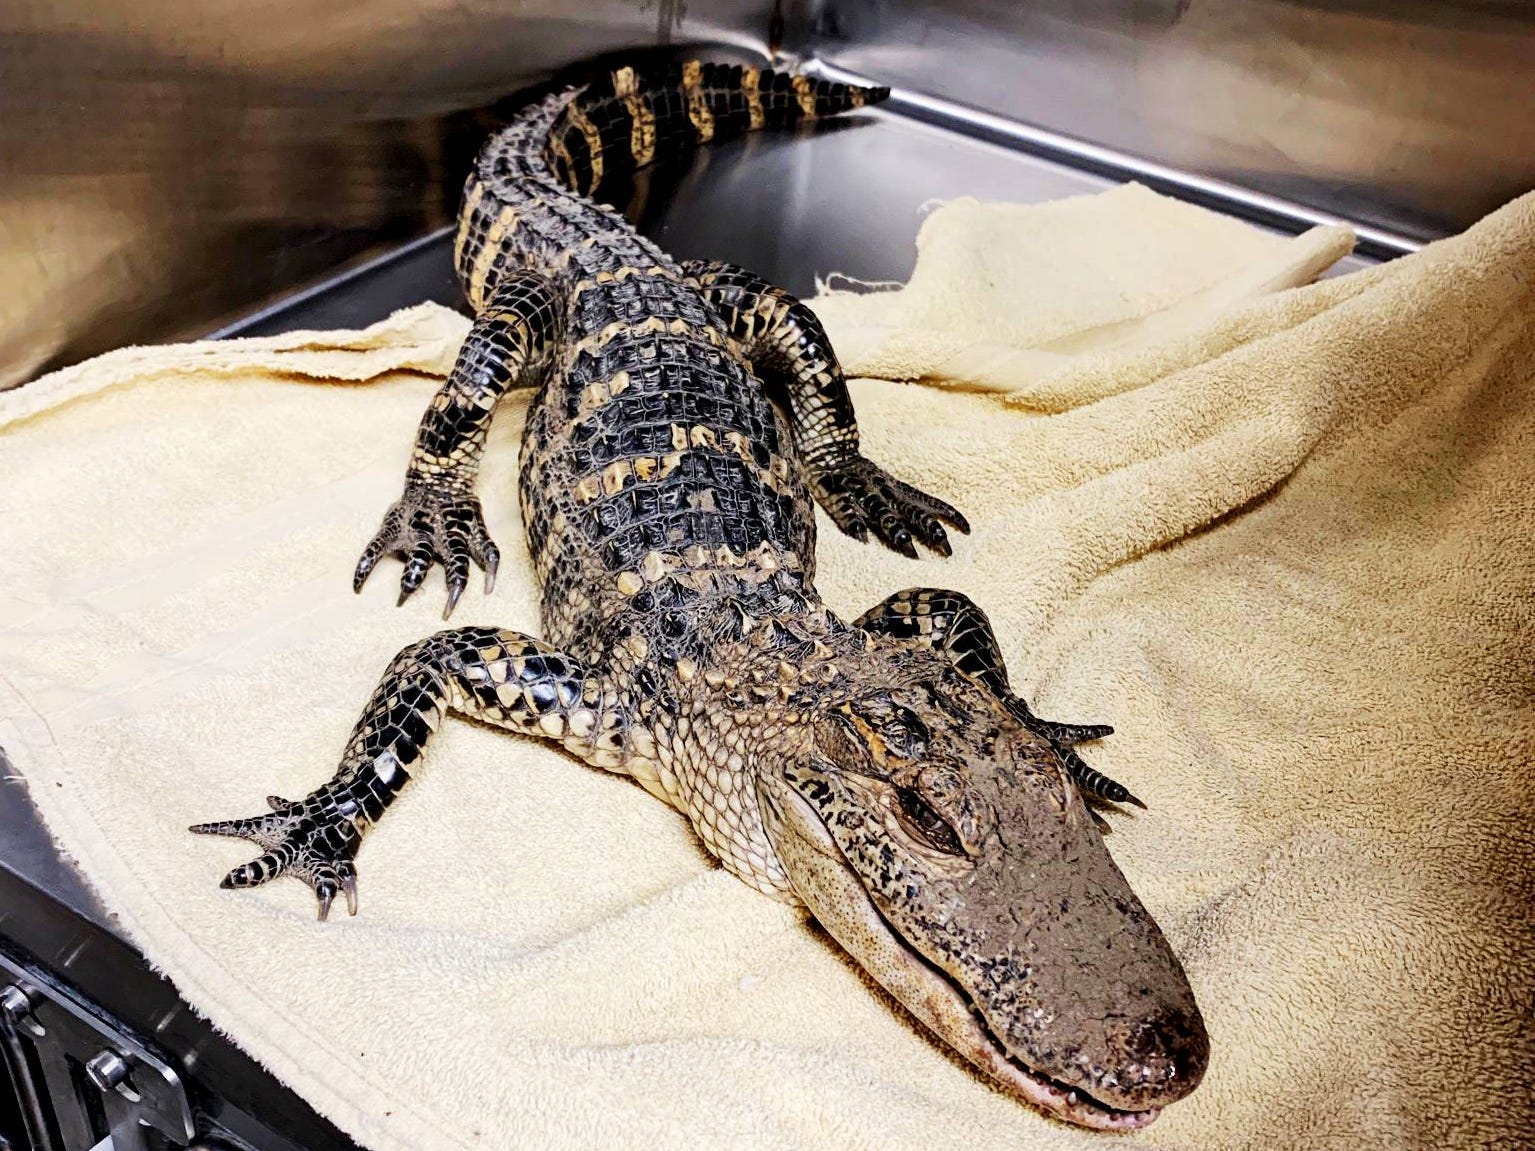 An alligator was found on the trails near Carver Cemetery March 9.